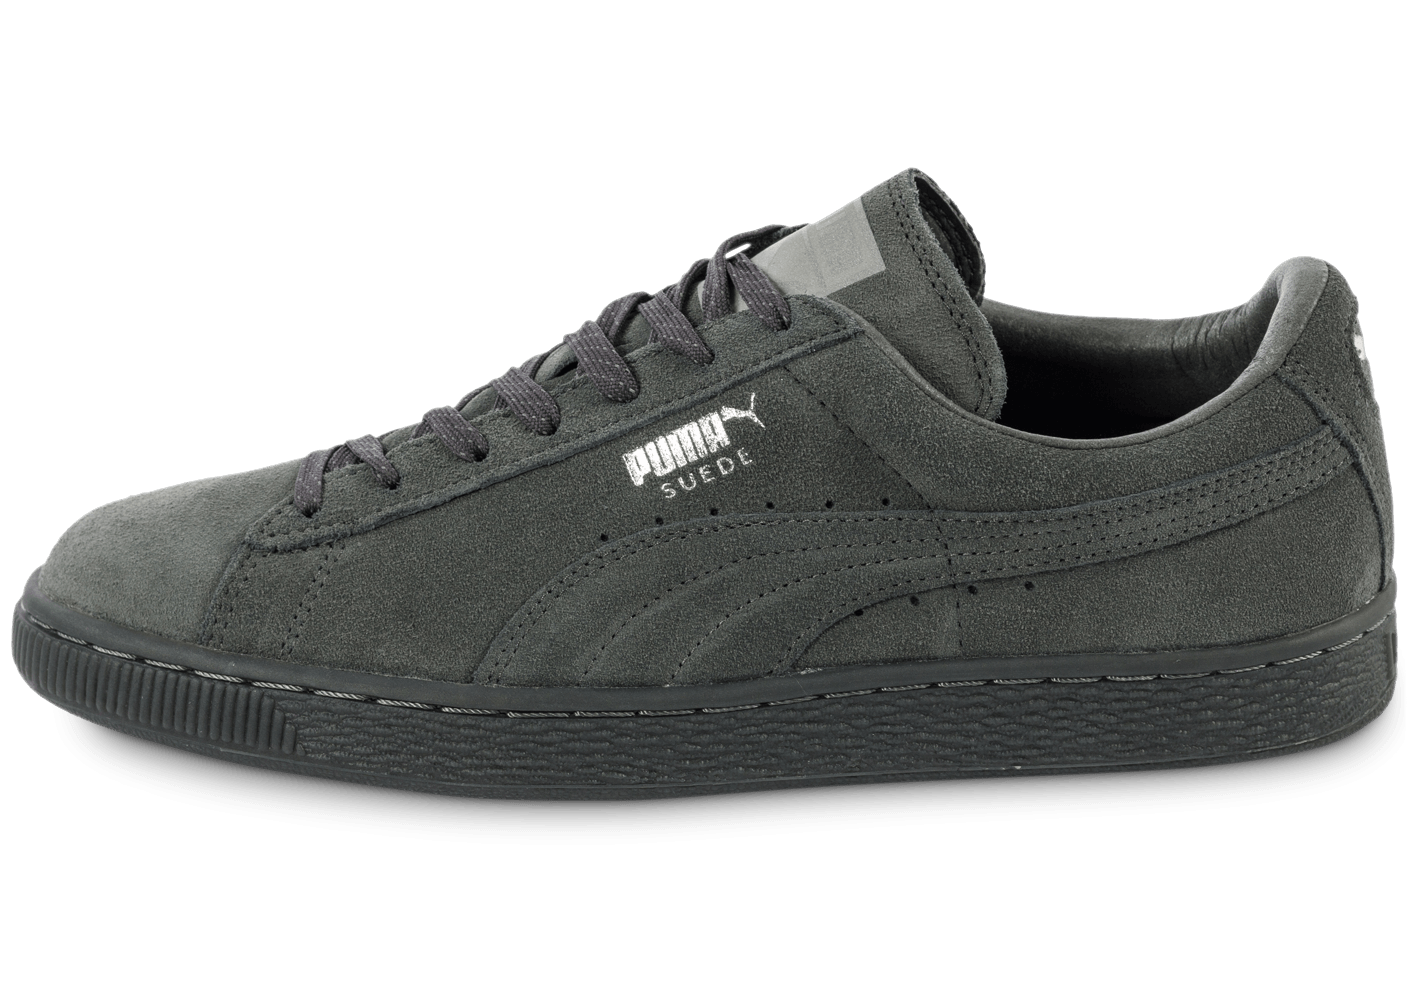 puma suede classic ref iced grise chaussures homme chausport. Black Bedroom Furniture Sets. Home Design Ideas